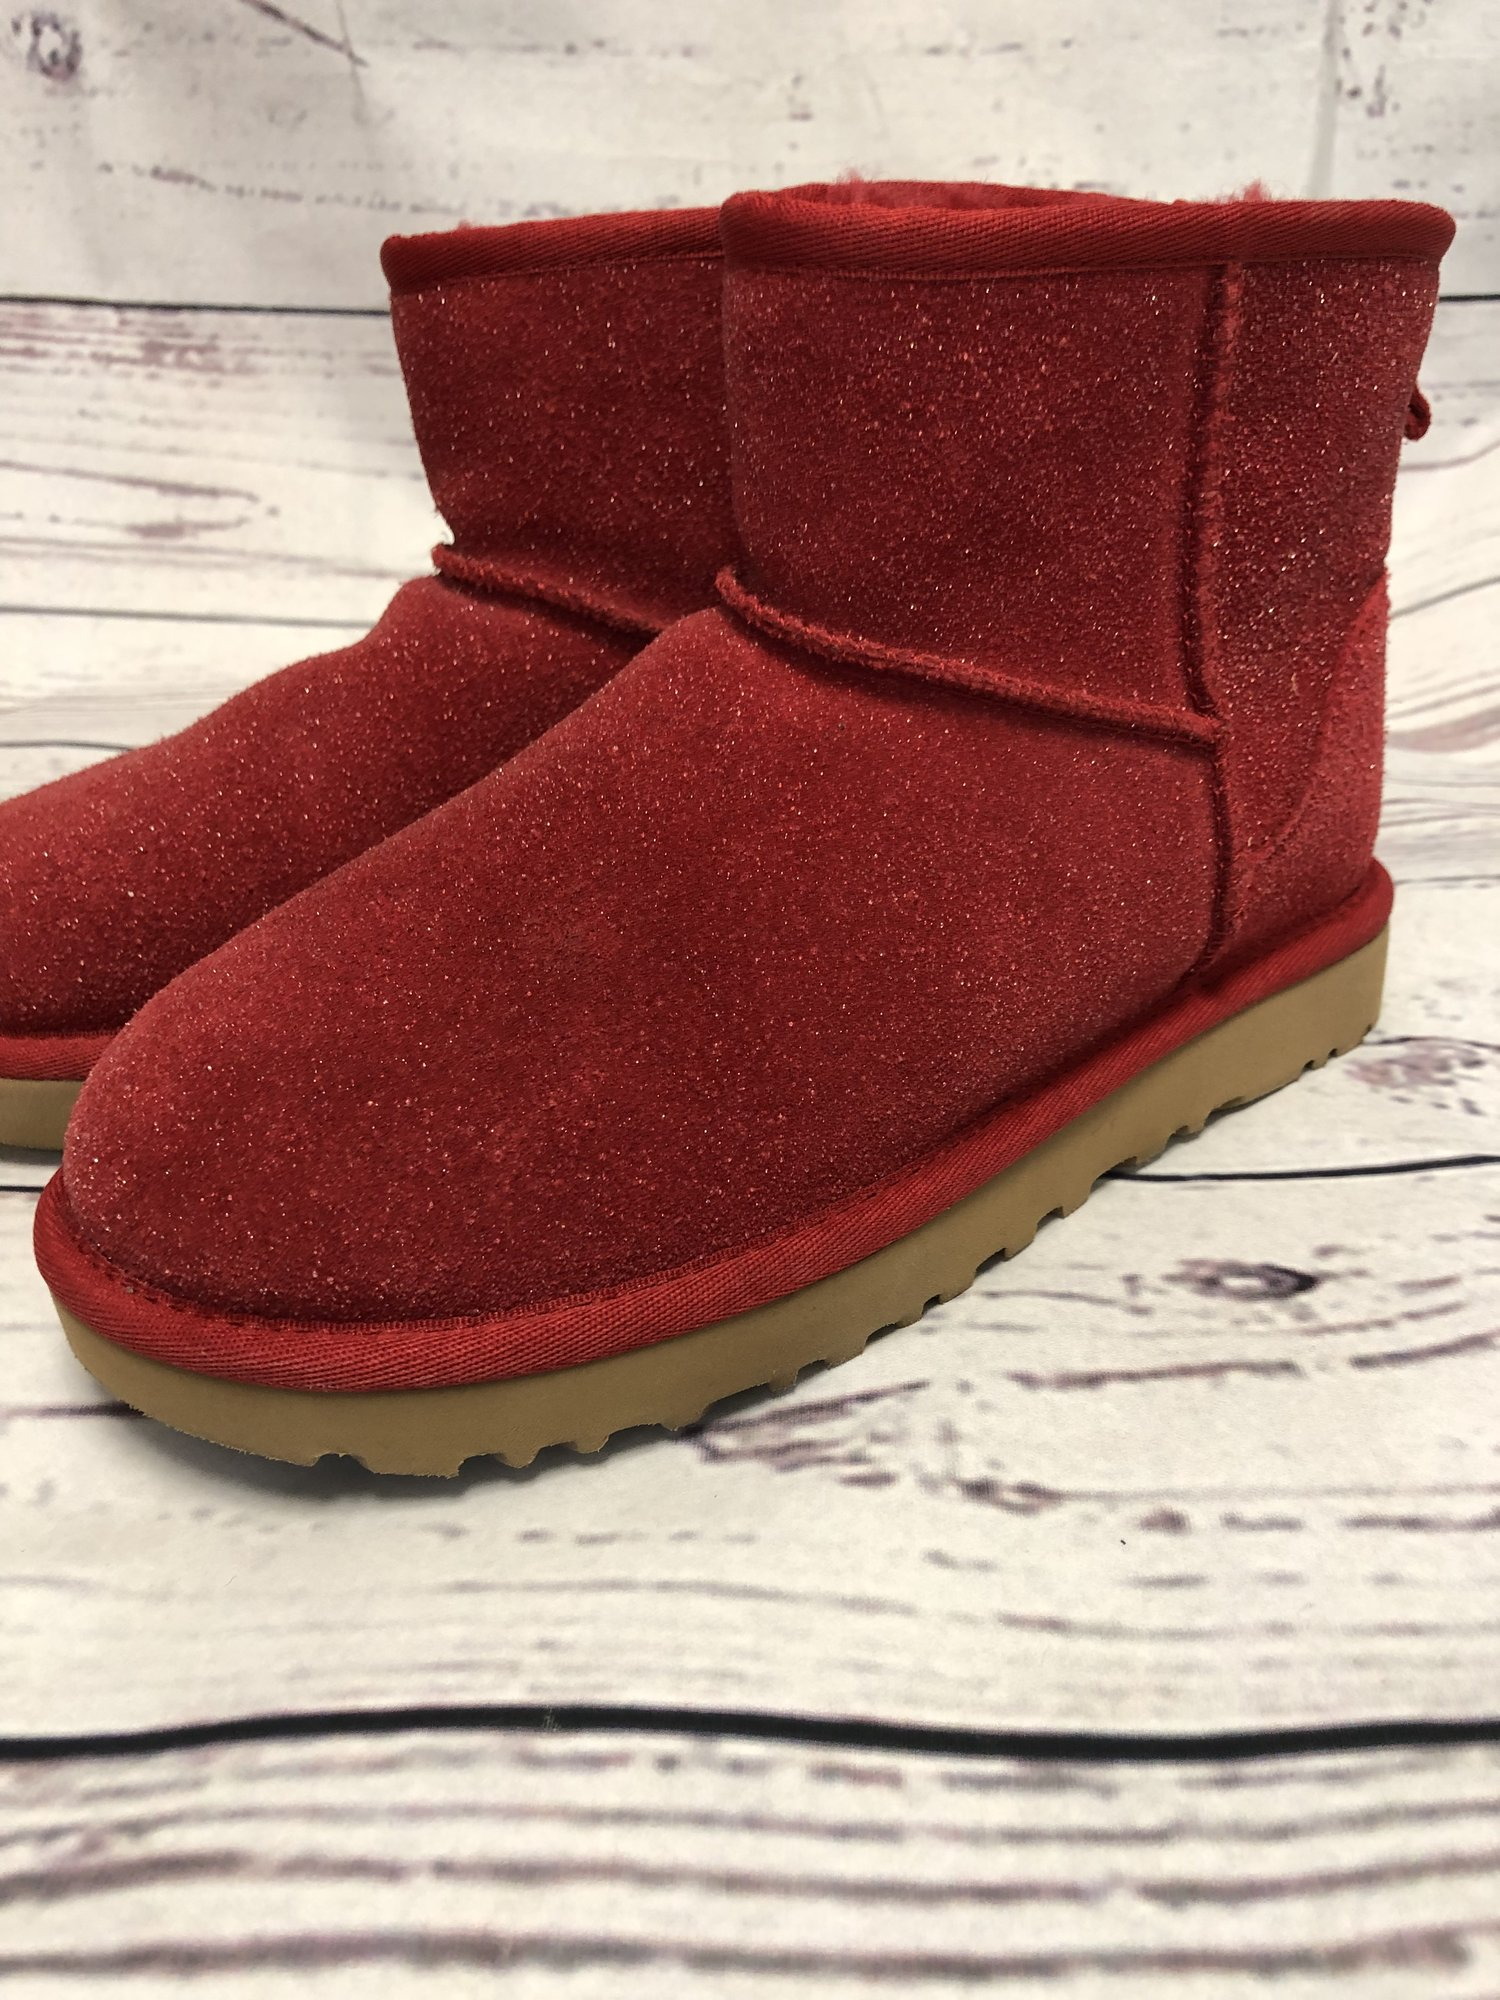 Ugg Boots in gently used condition. The red color is beautiful and so unique.